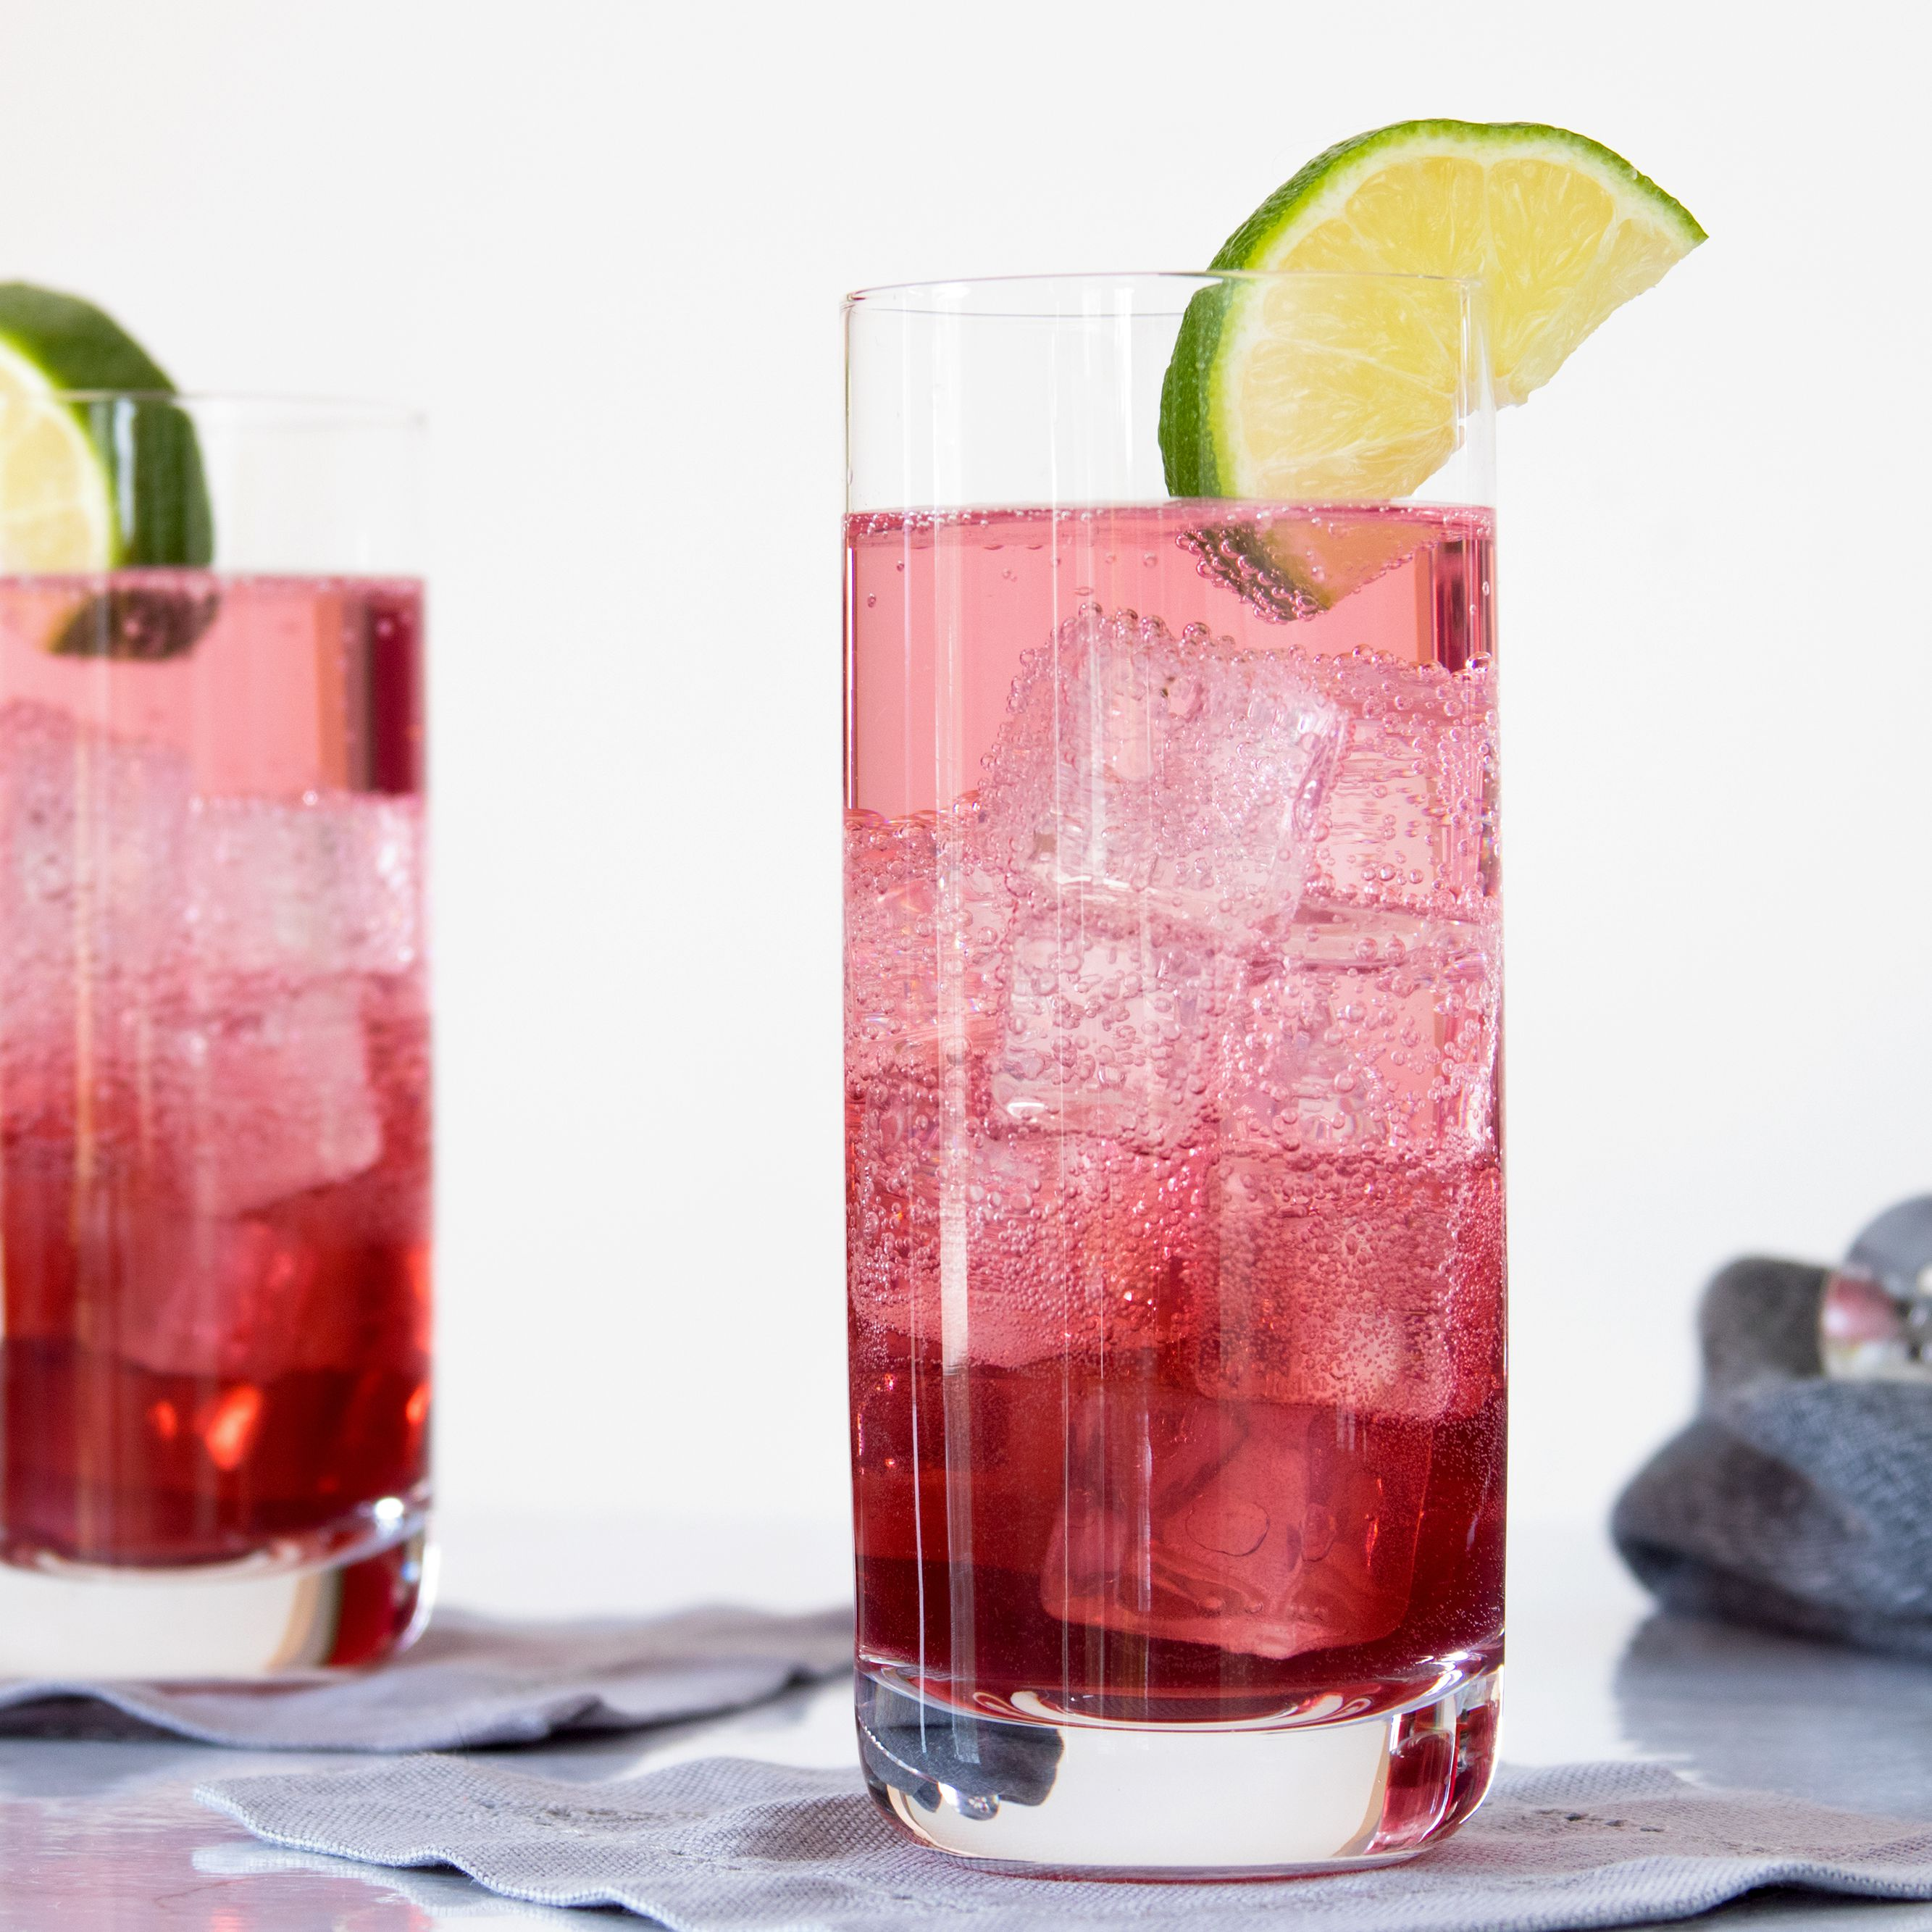 22 Sweet and Fun Raspberry Cocktails to Mix Up